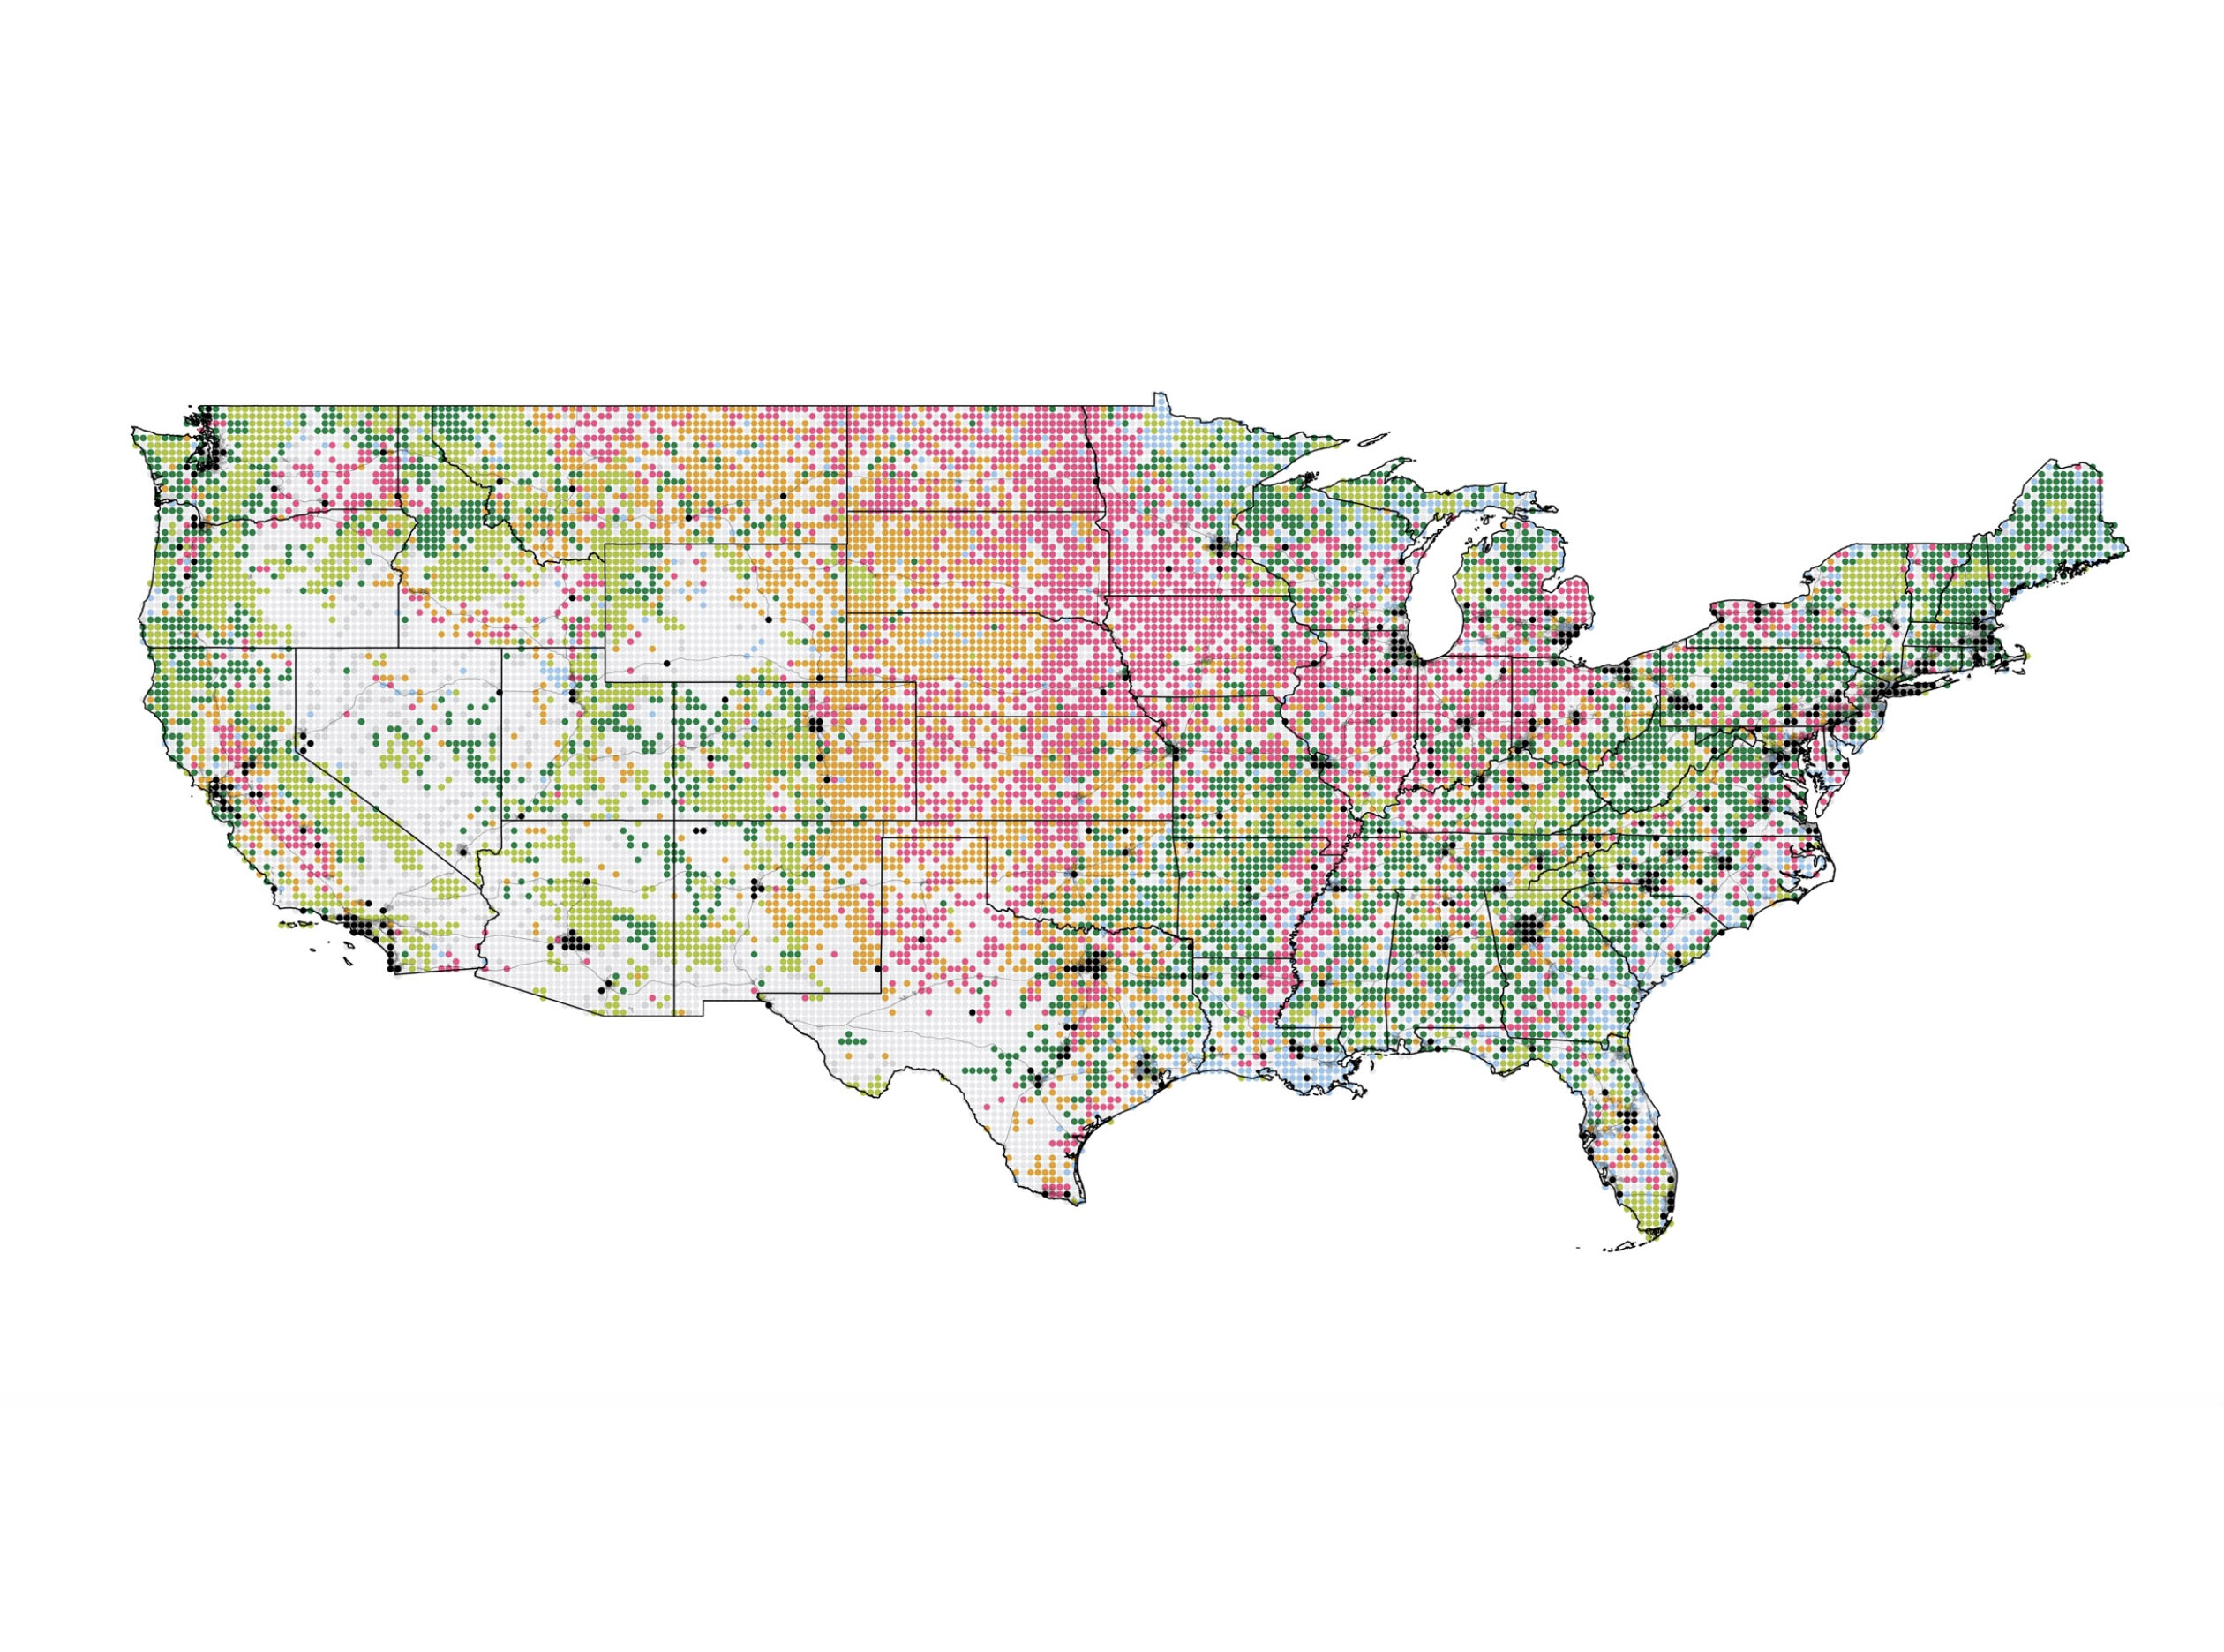 A map of the US showing open space, urban areas, agriculture lands, grassland and pasture lands, forests, wetlands, shrub lands, and other areas through pixelated colored dots